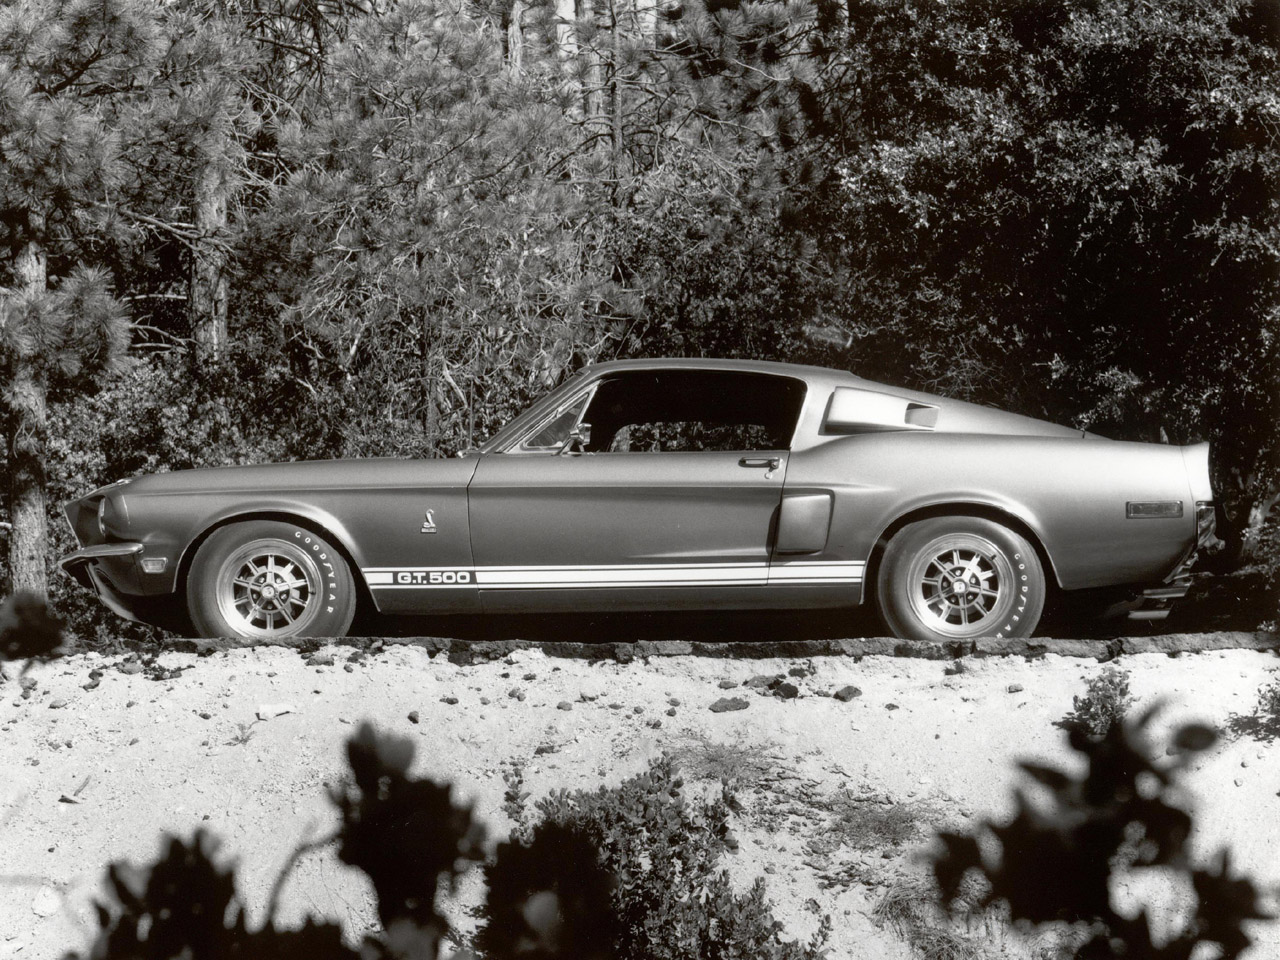 '1968 Shelby Mustang GT500 KR